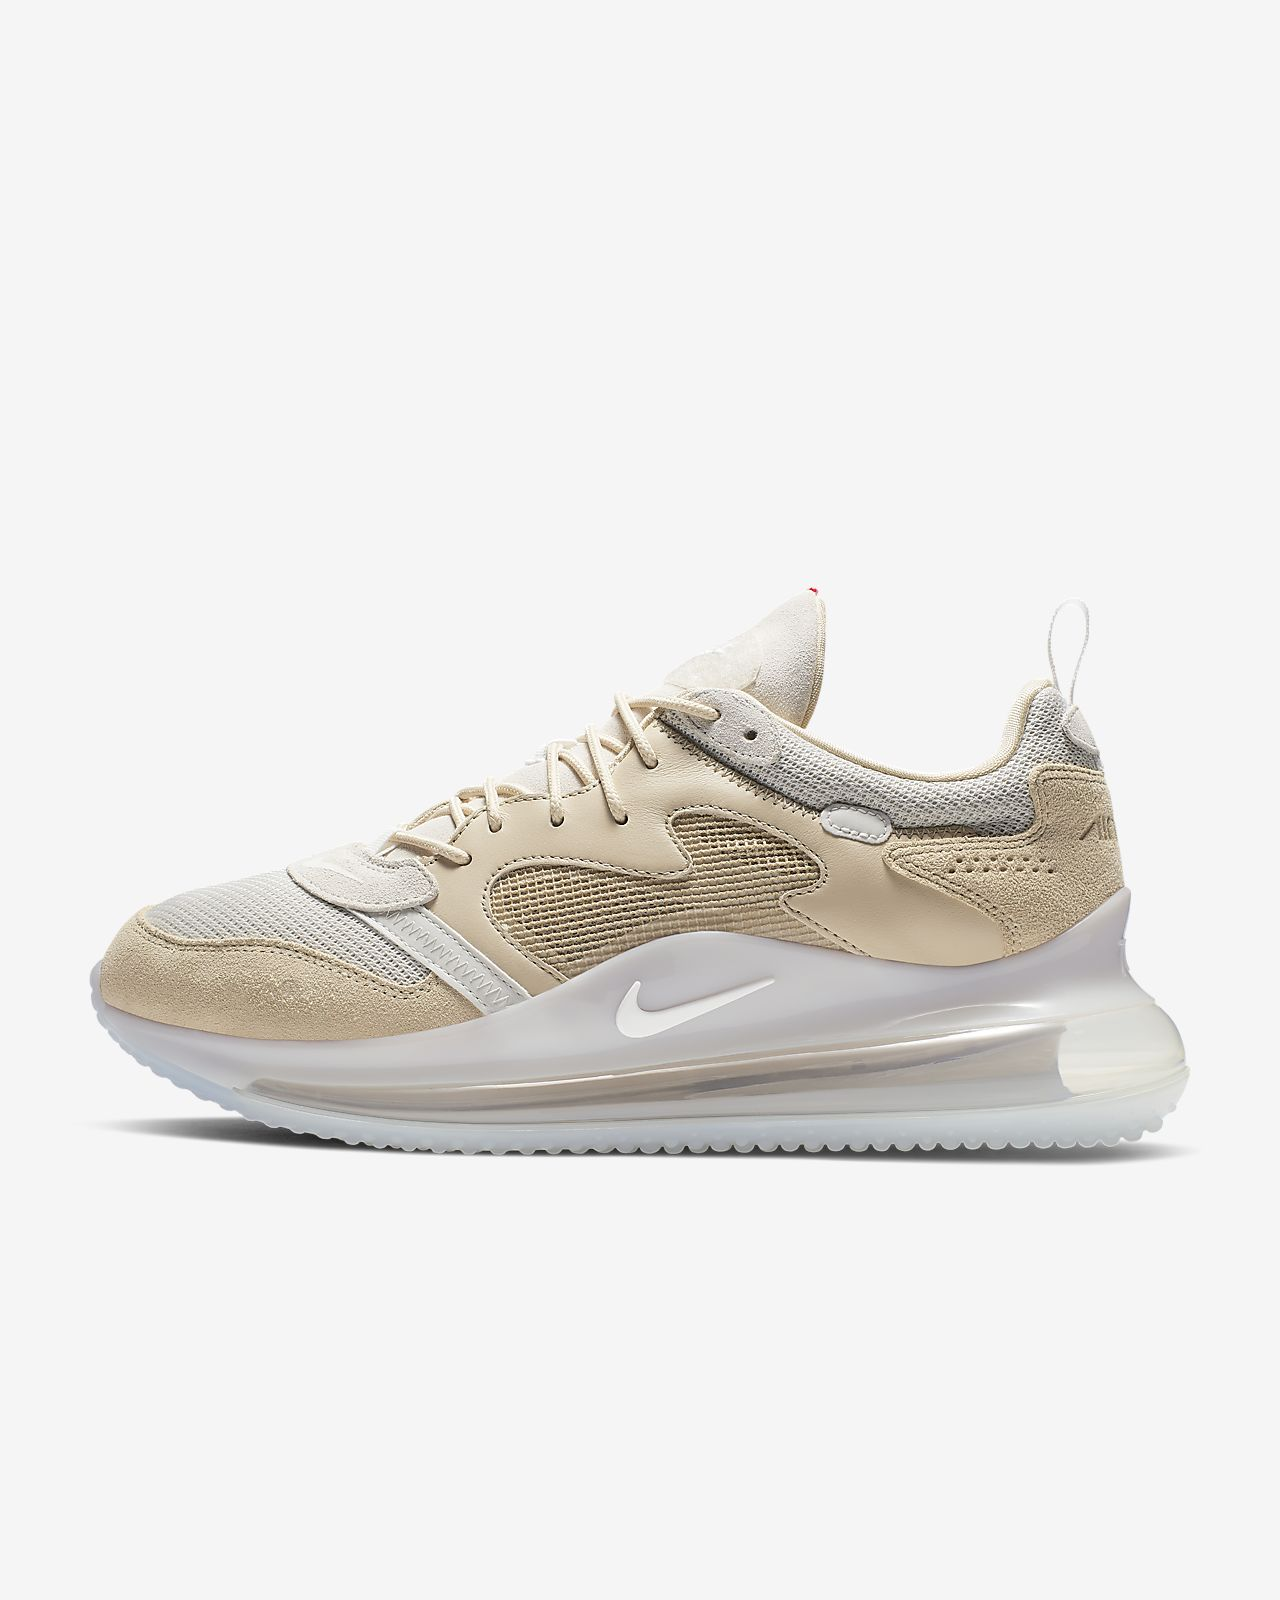 Nike Air Max 720 | JD Sports Ireland